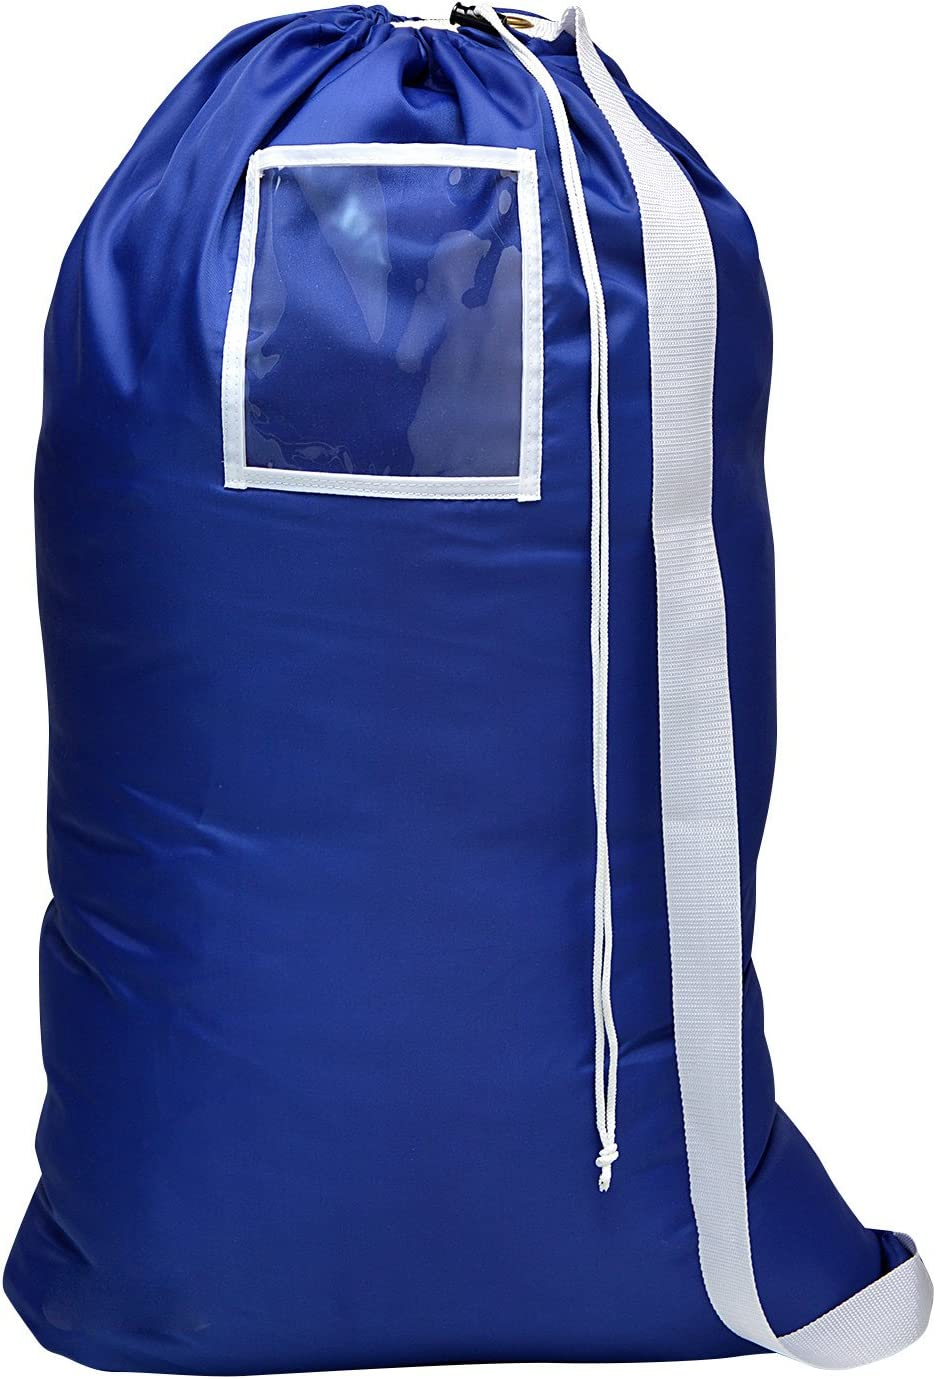 Carry Laundry Bag From Handy Laundry with Shoulder Strap, Large Size 24 Inches X 36 Inches, Commercial Grade 100% Nylon and Made in the USA - Designed for Heavy Duty Use - College Laundry Bag - Trips to Laundromat - Household Storage (Royal Blue)